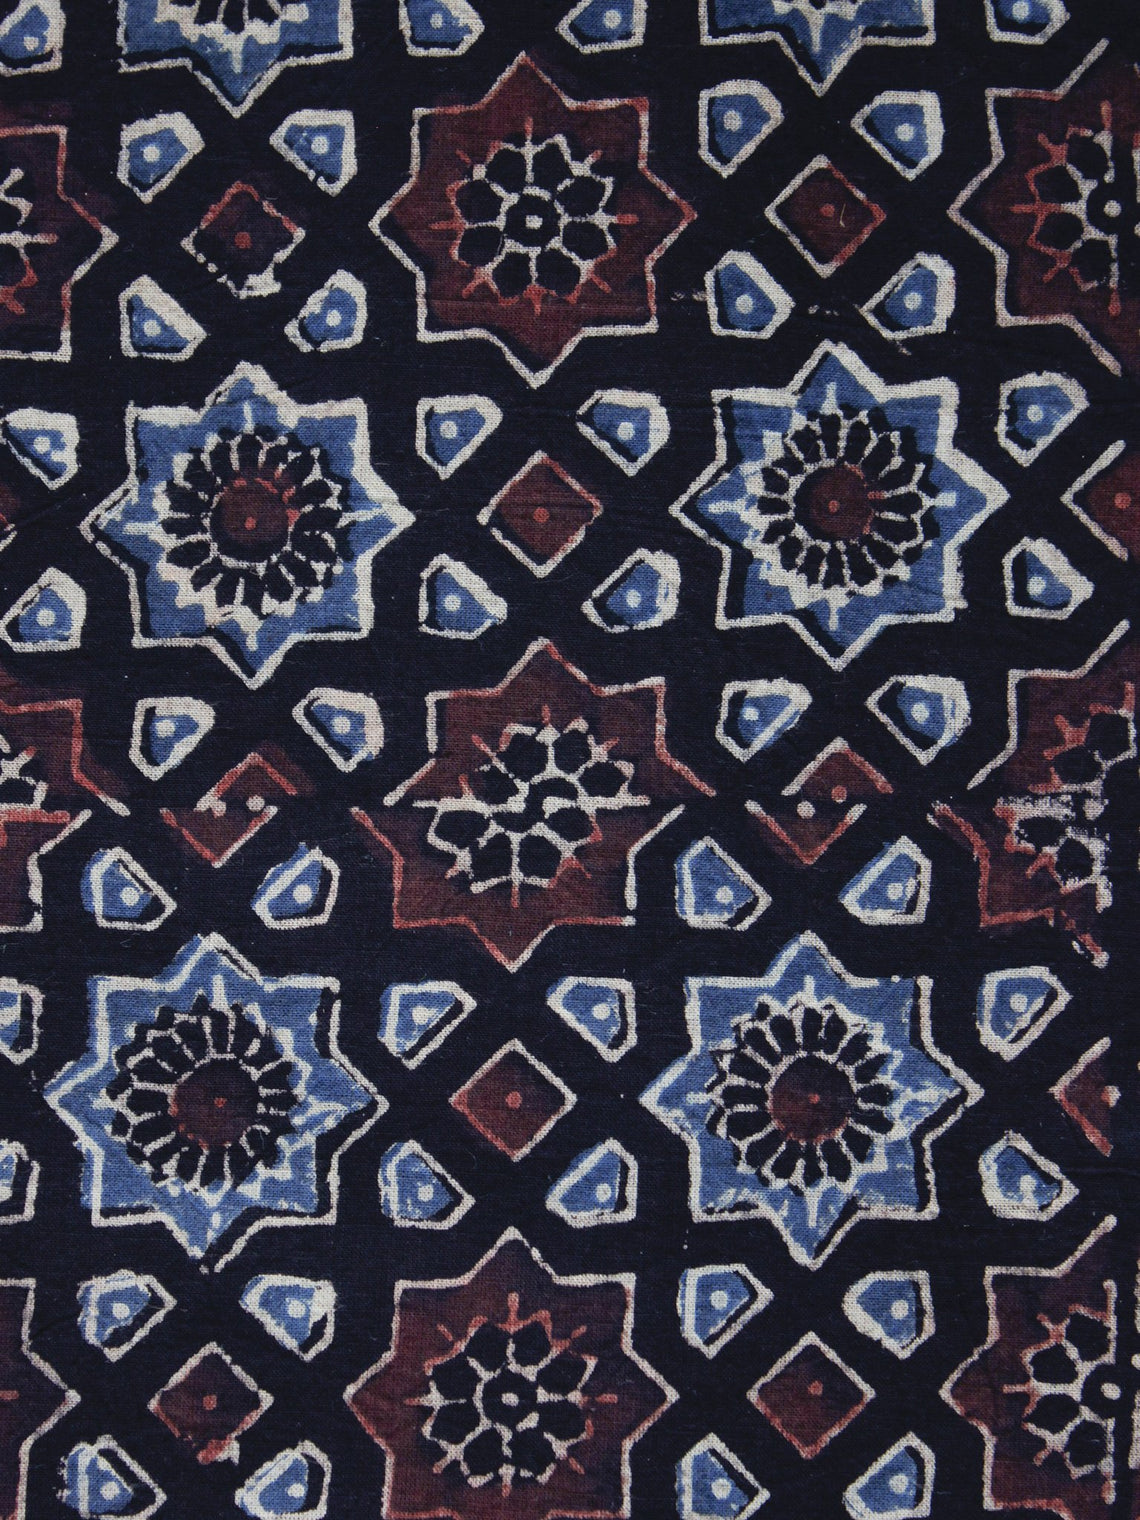 Black Brown Blue Ajrakh Printed Cotton Fabric Per Meter - F003F1193